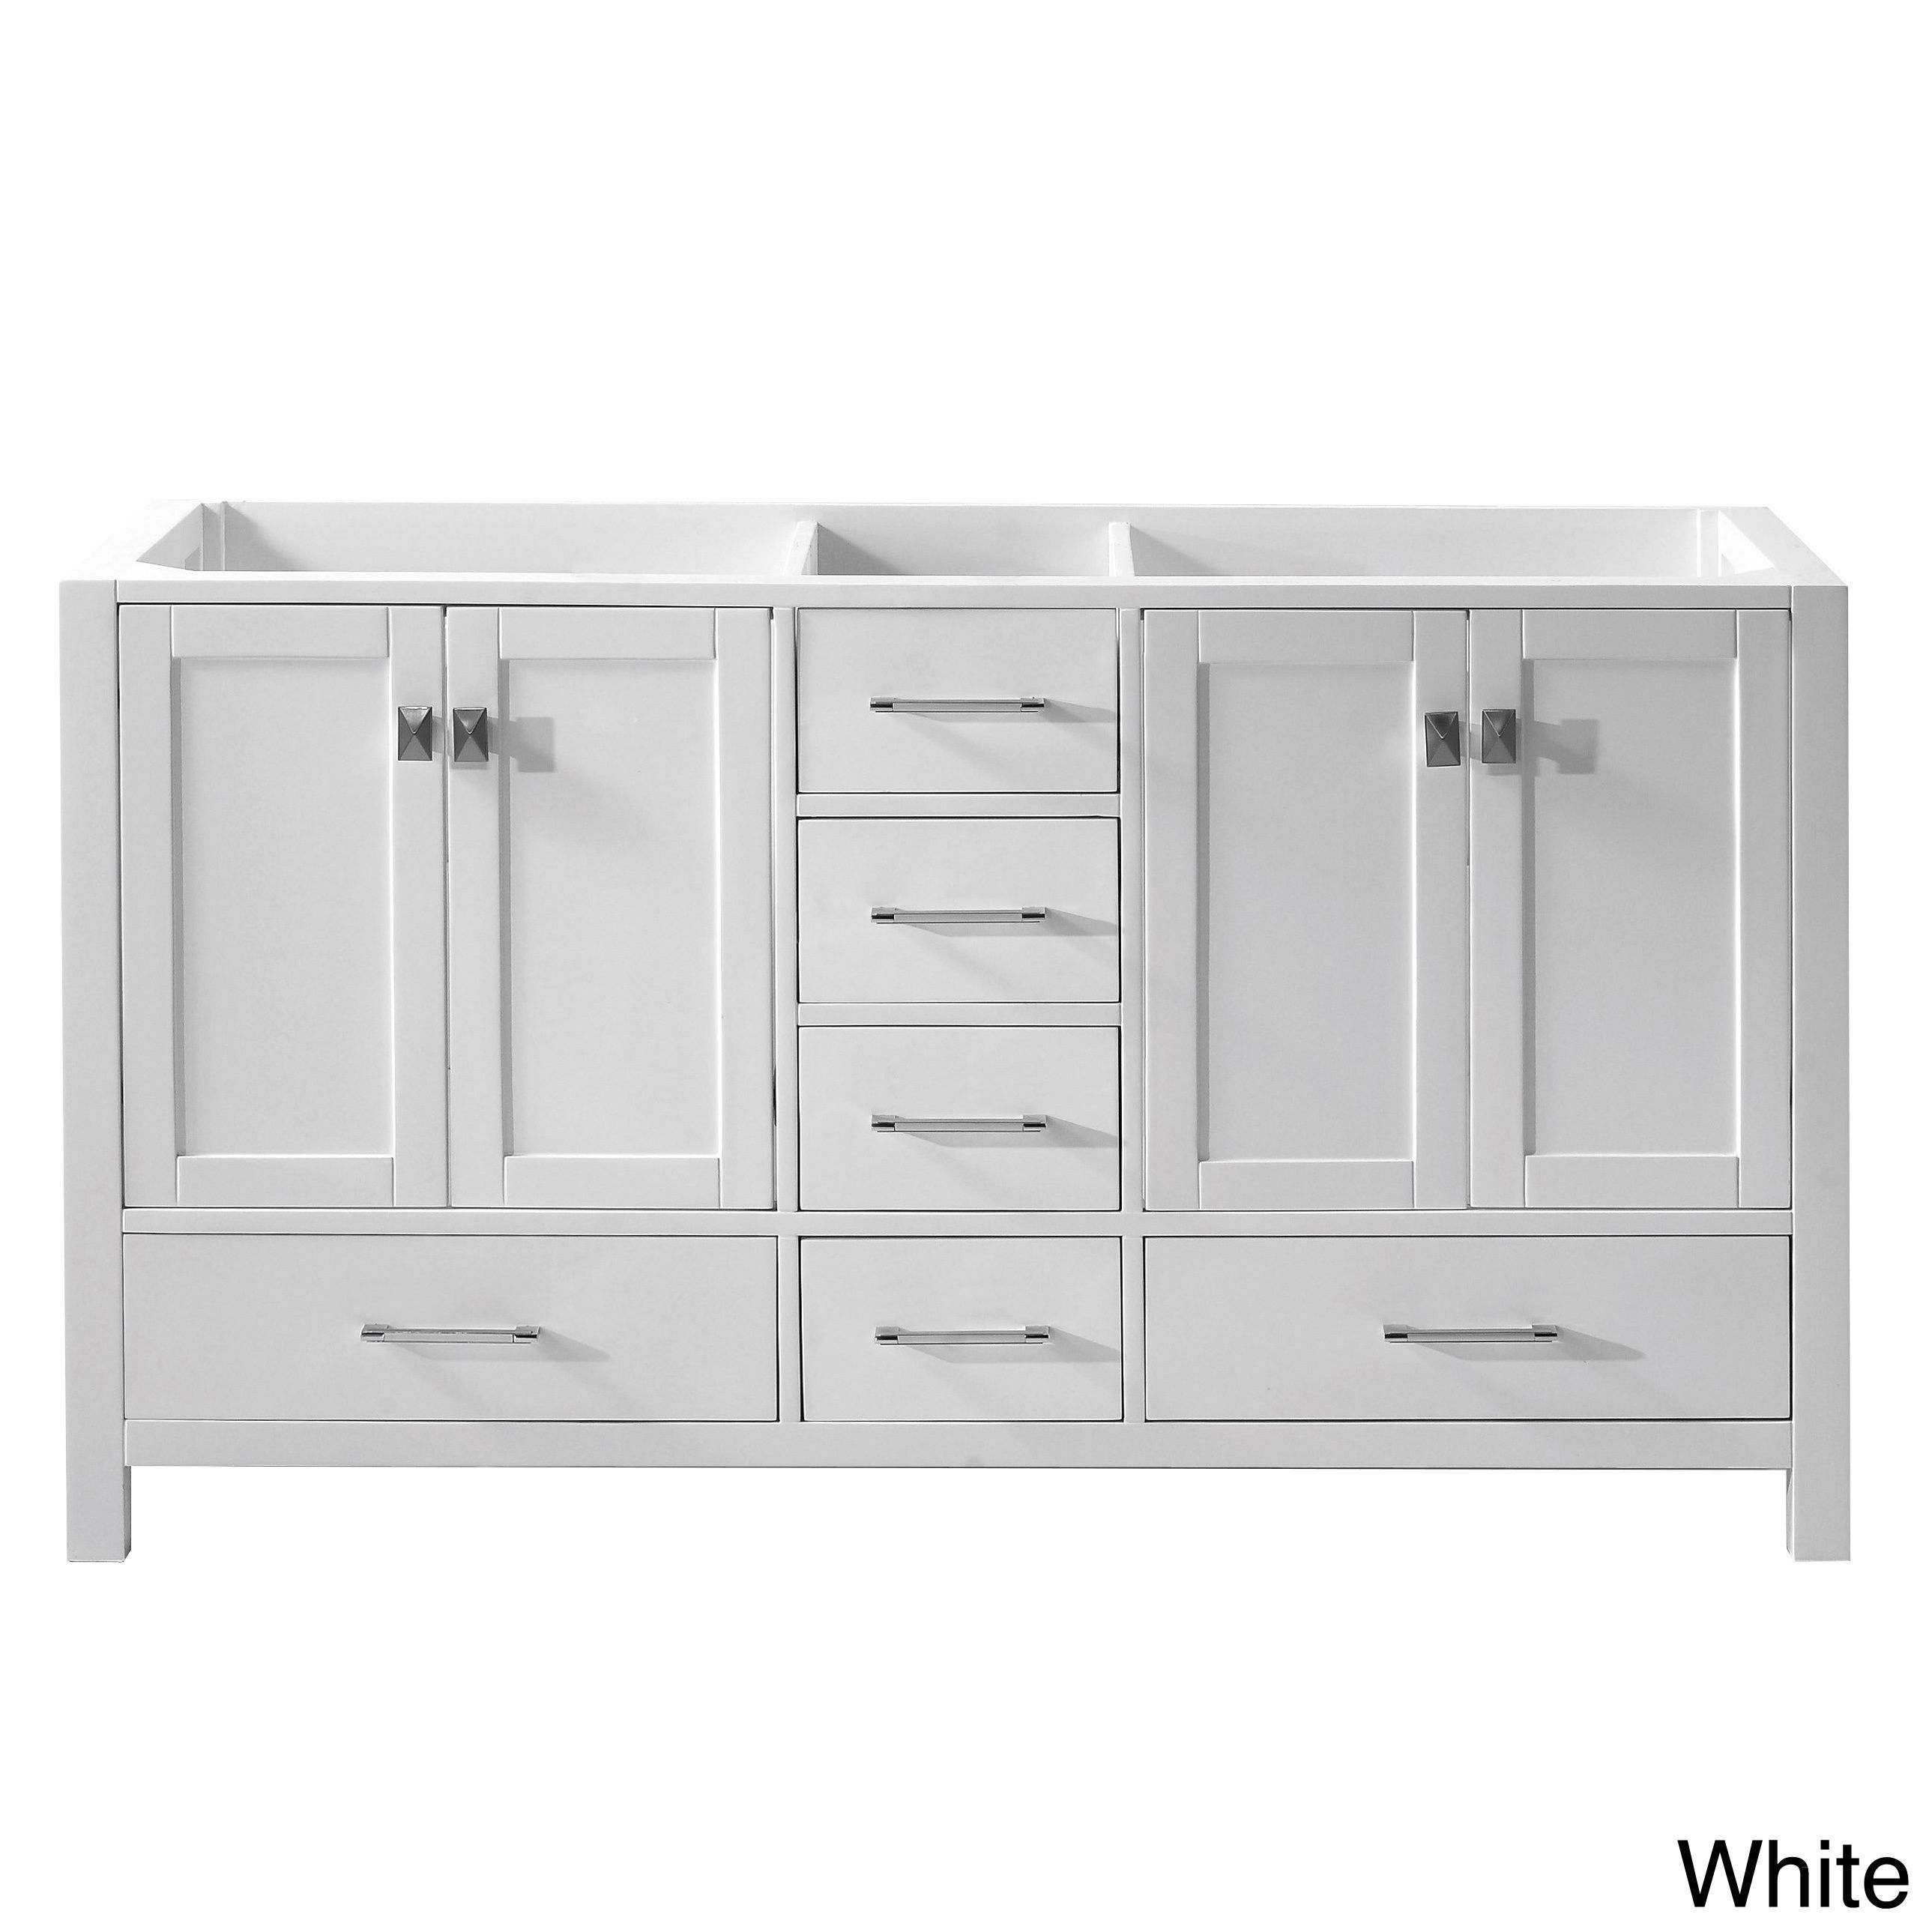 inch clearance ikea vanity double bathroom awesome fresh tops download inspirational kitchen cabinet vanities image sinks sink lowes of